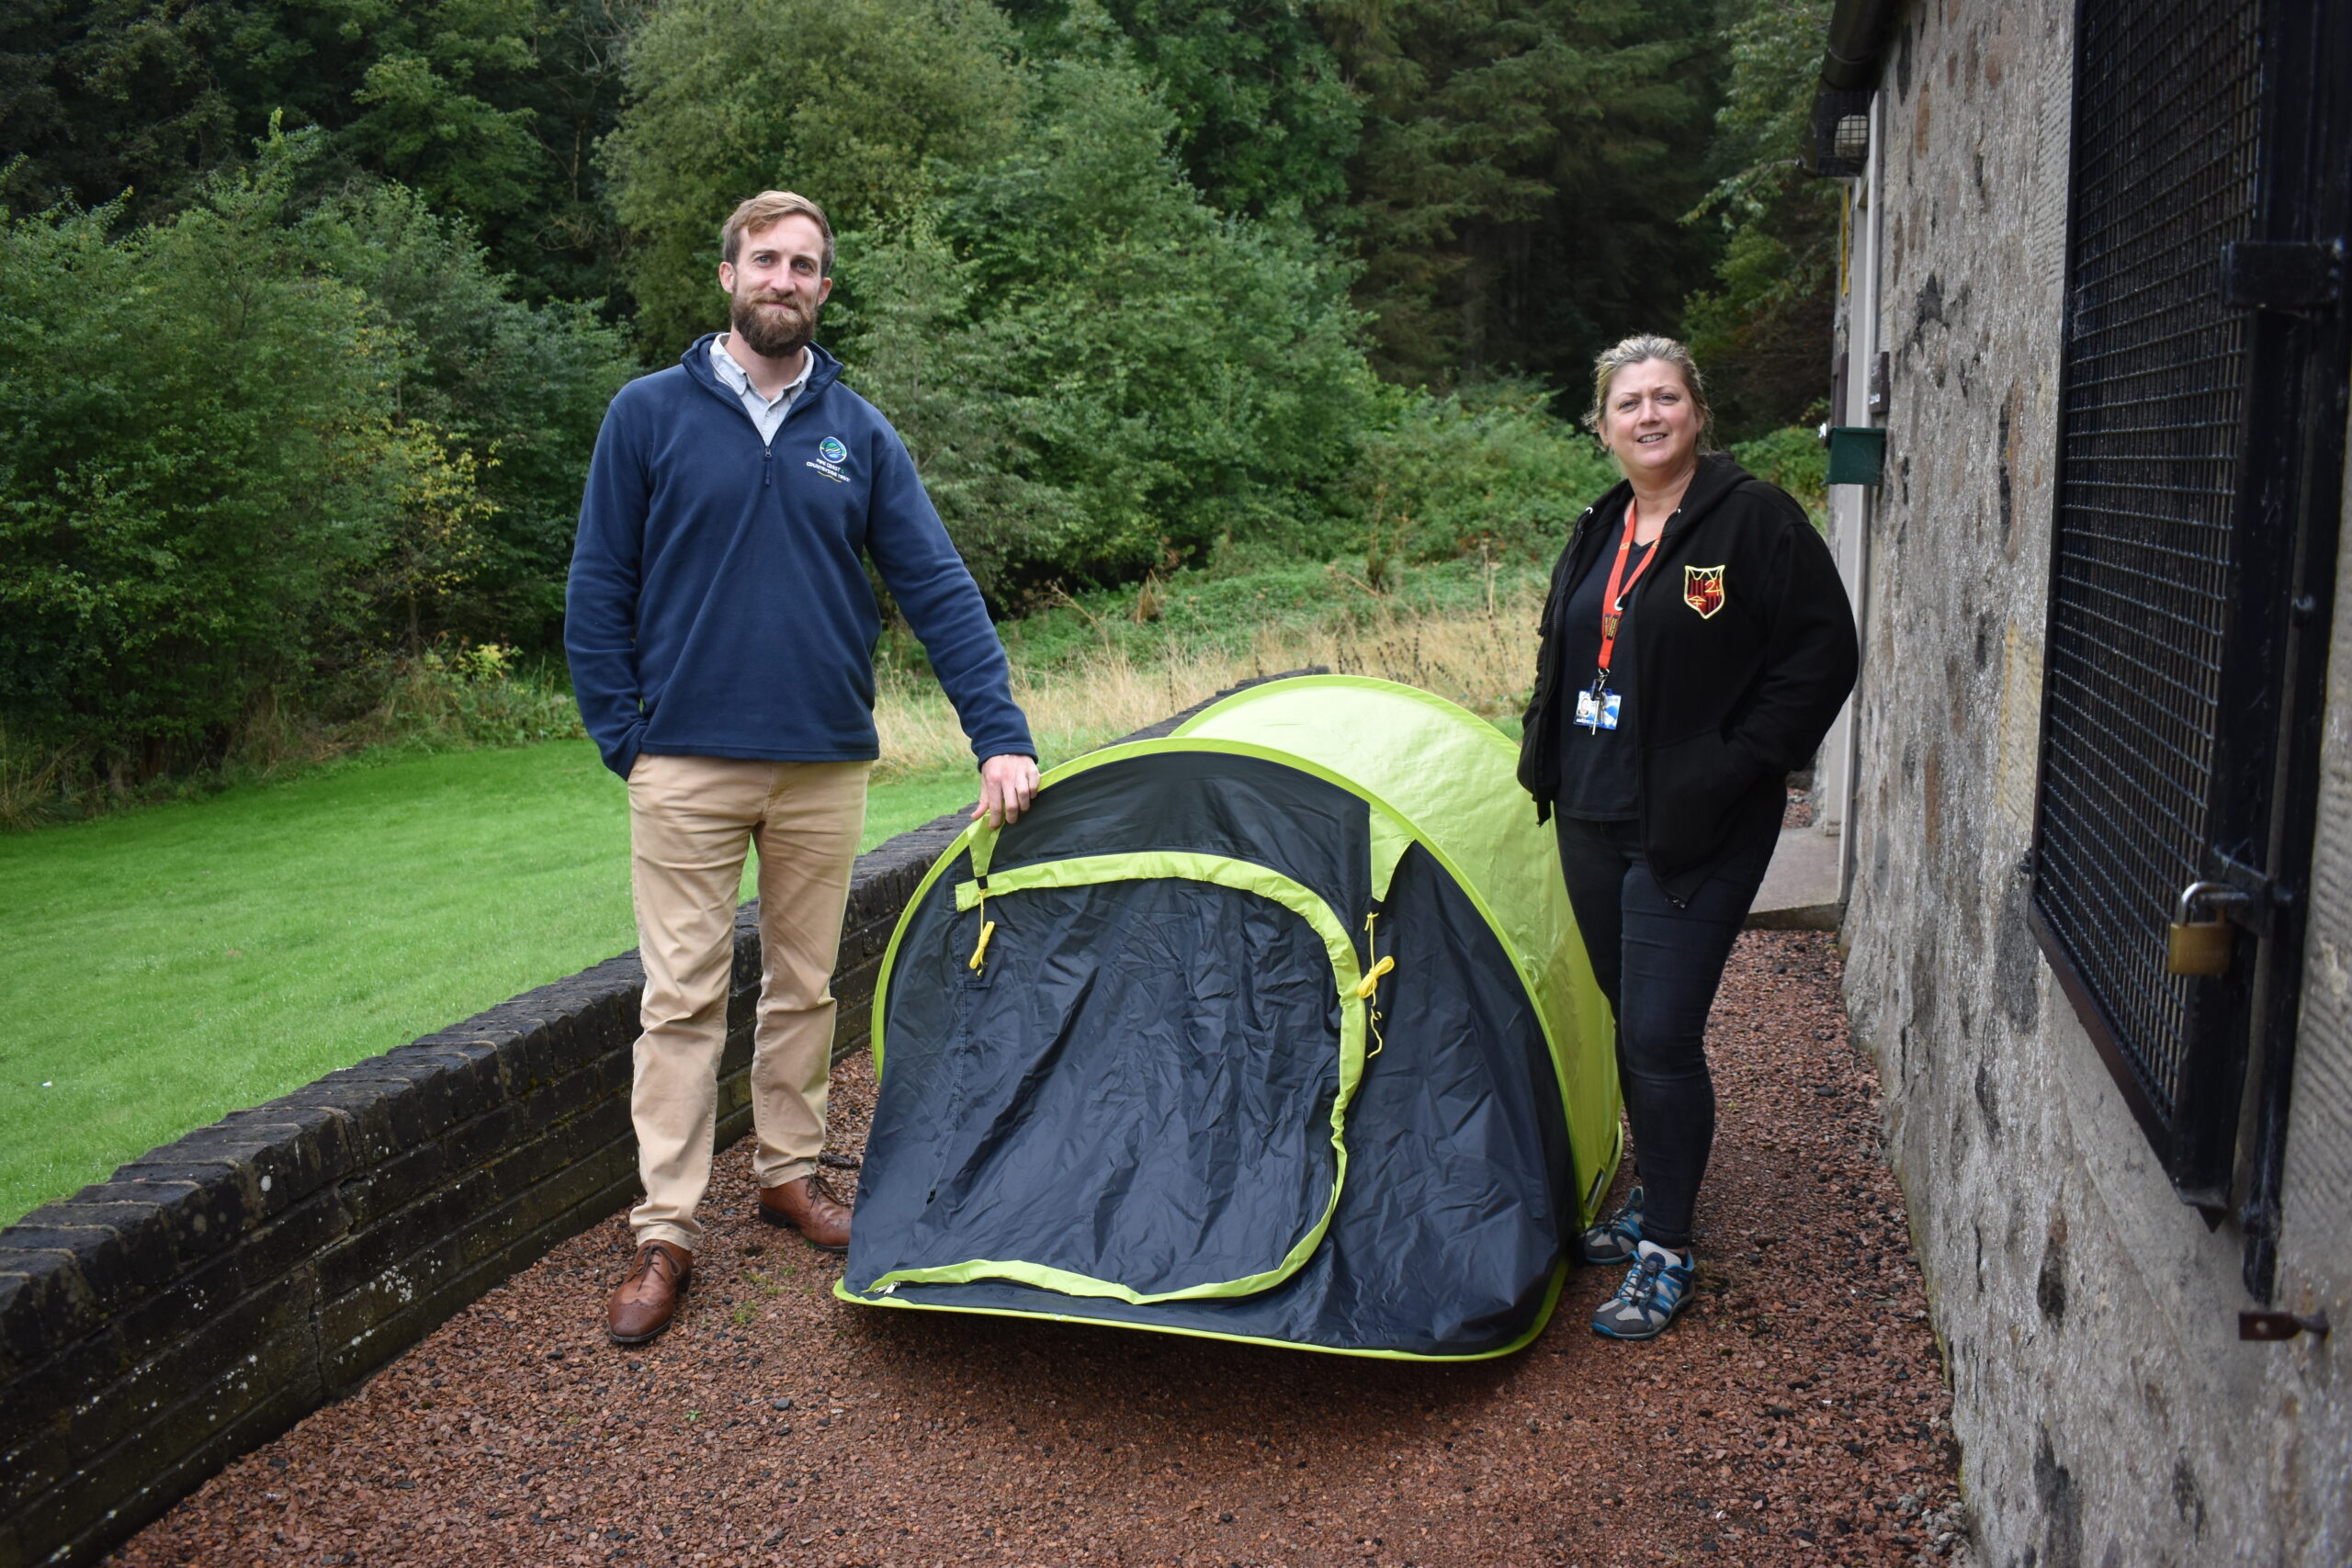 Abandoned Tents Find a New Home